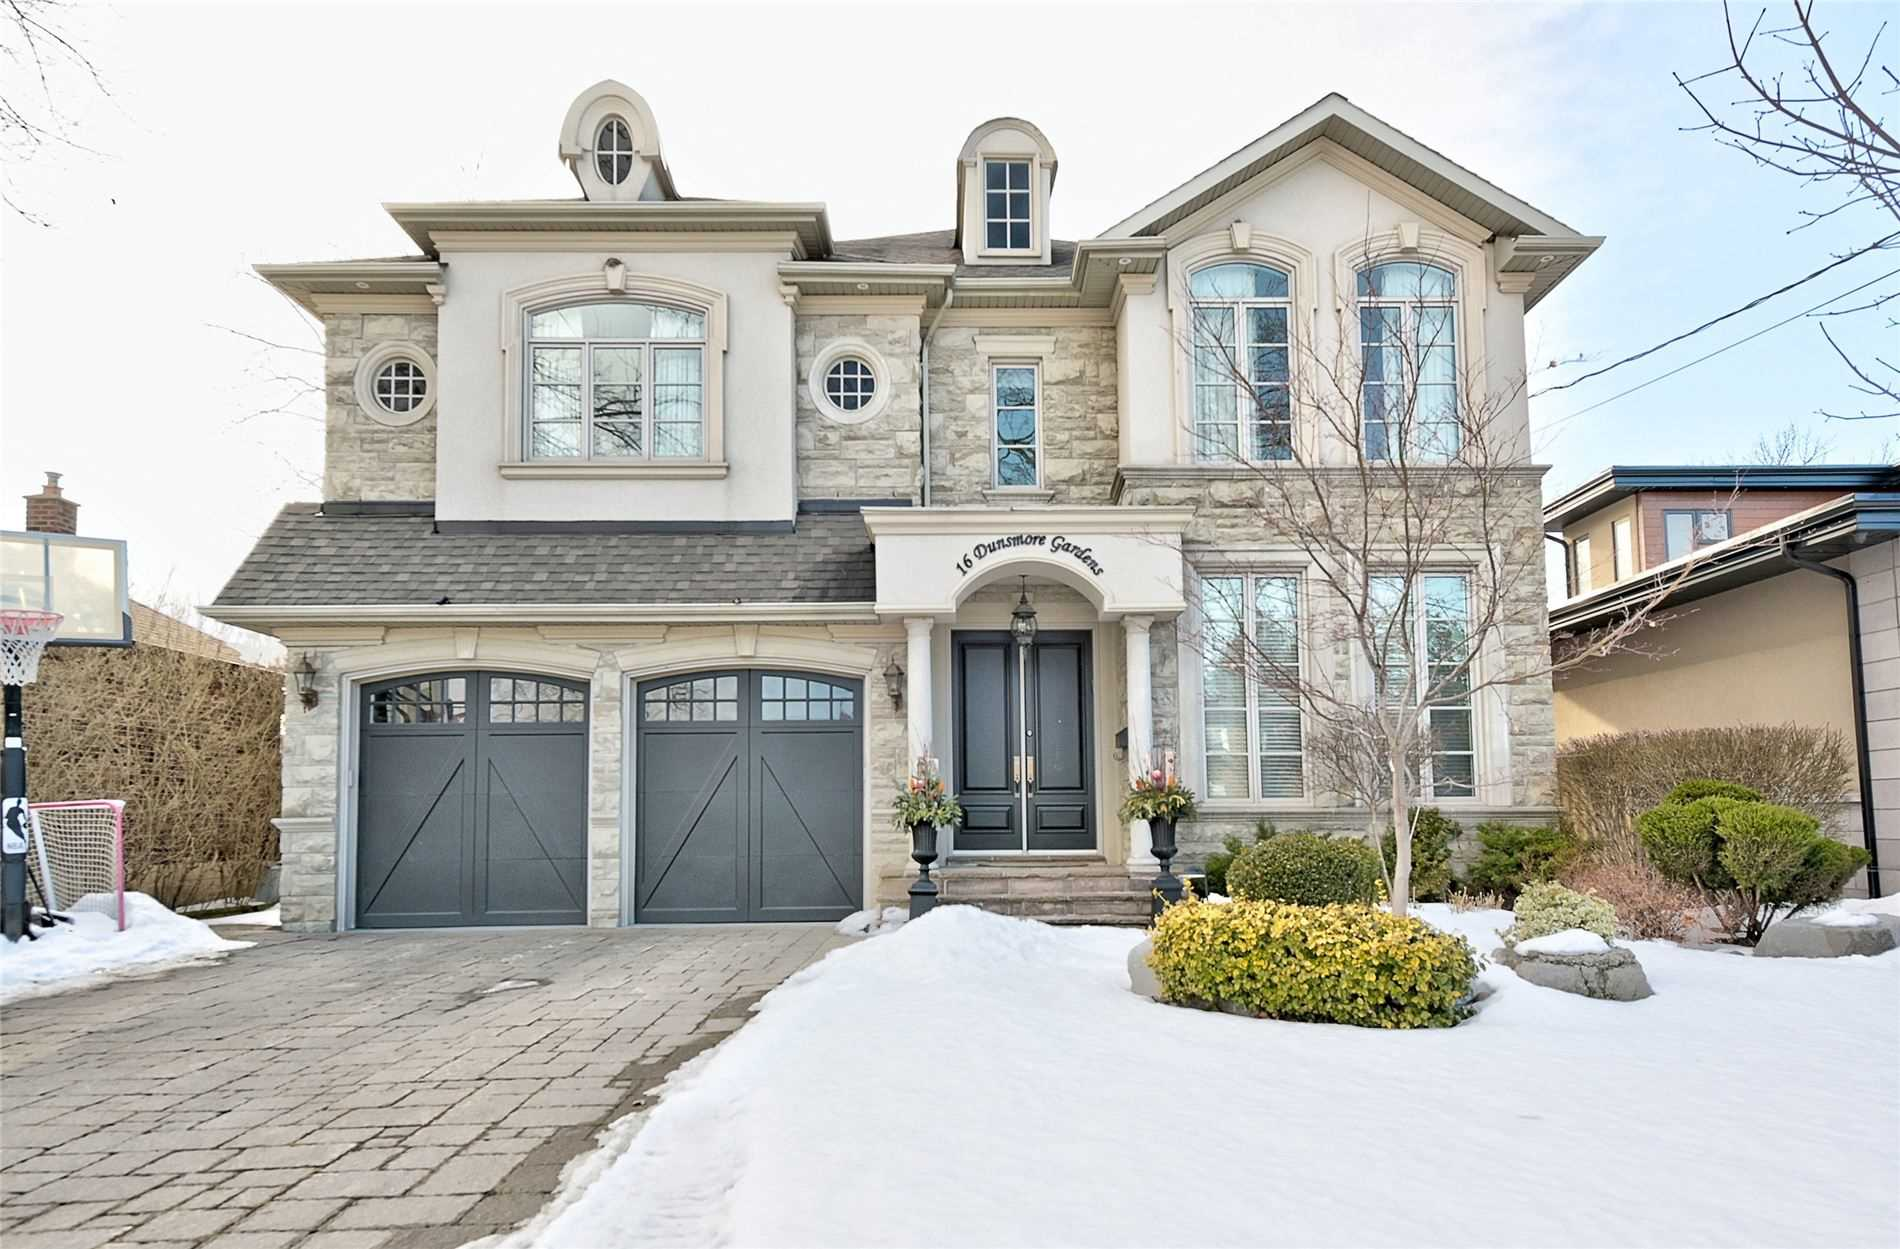 16 Dunsmore Gdns, Toronto, Ontario M3H3M2, 4 Bedrooms Bedrooms, 10 Rooms Rooms,6 BathroomsBathrooms,Detached,For Sale,Dunsmore,C5141450